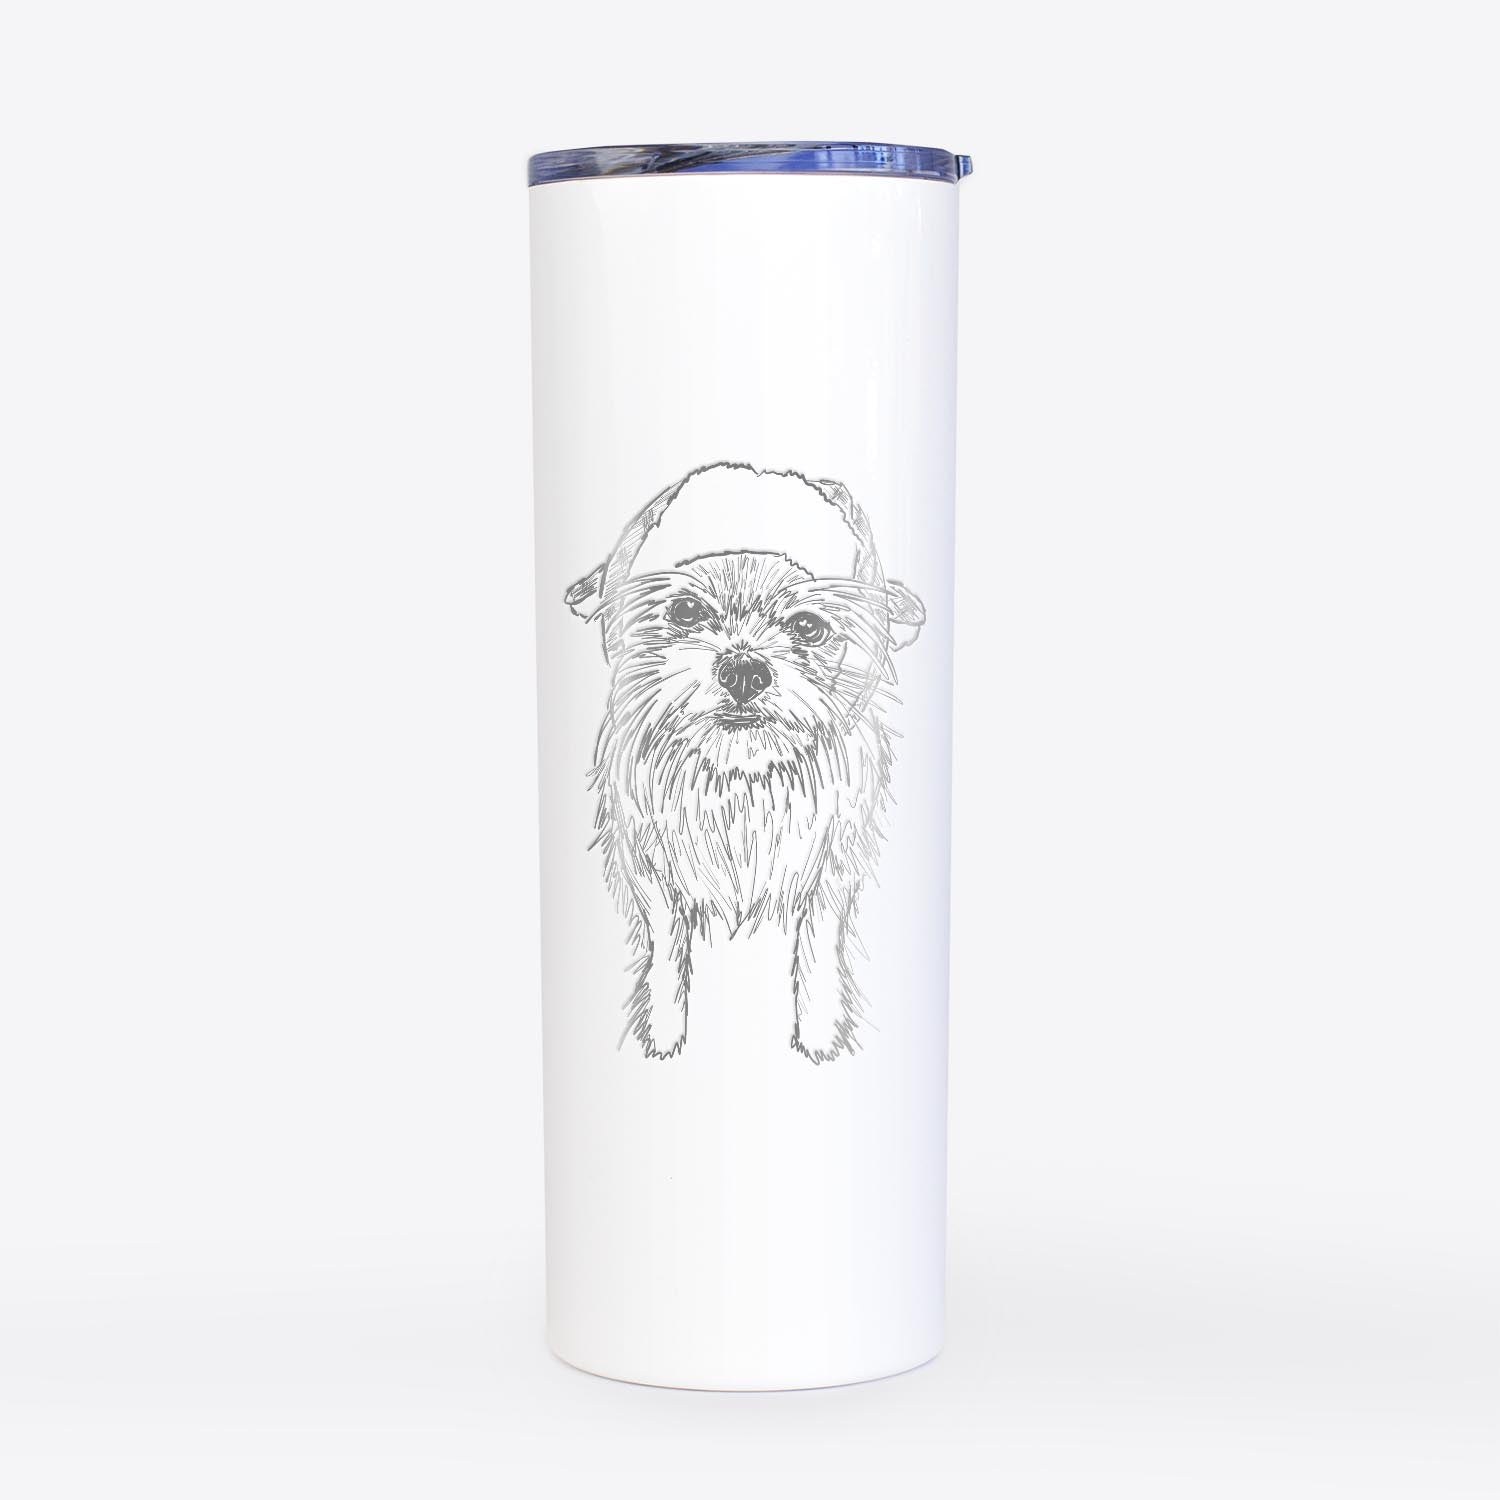 Doodled Gambit the Long Haired Chihuahua - 20oz Skinny Tumbler